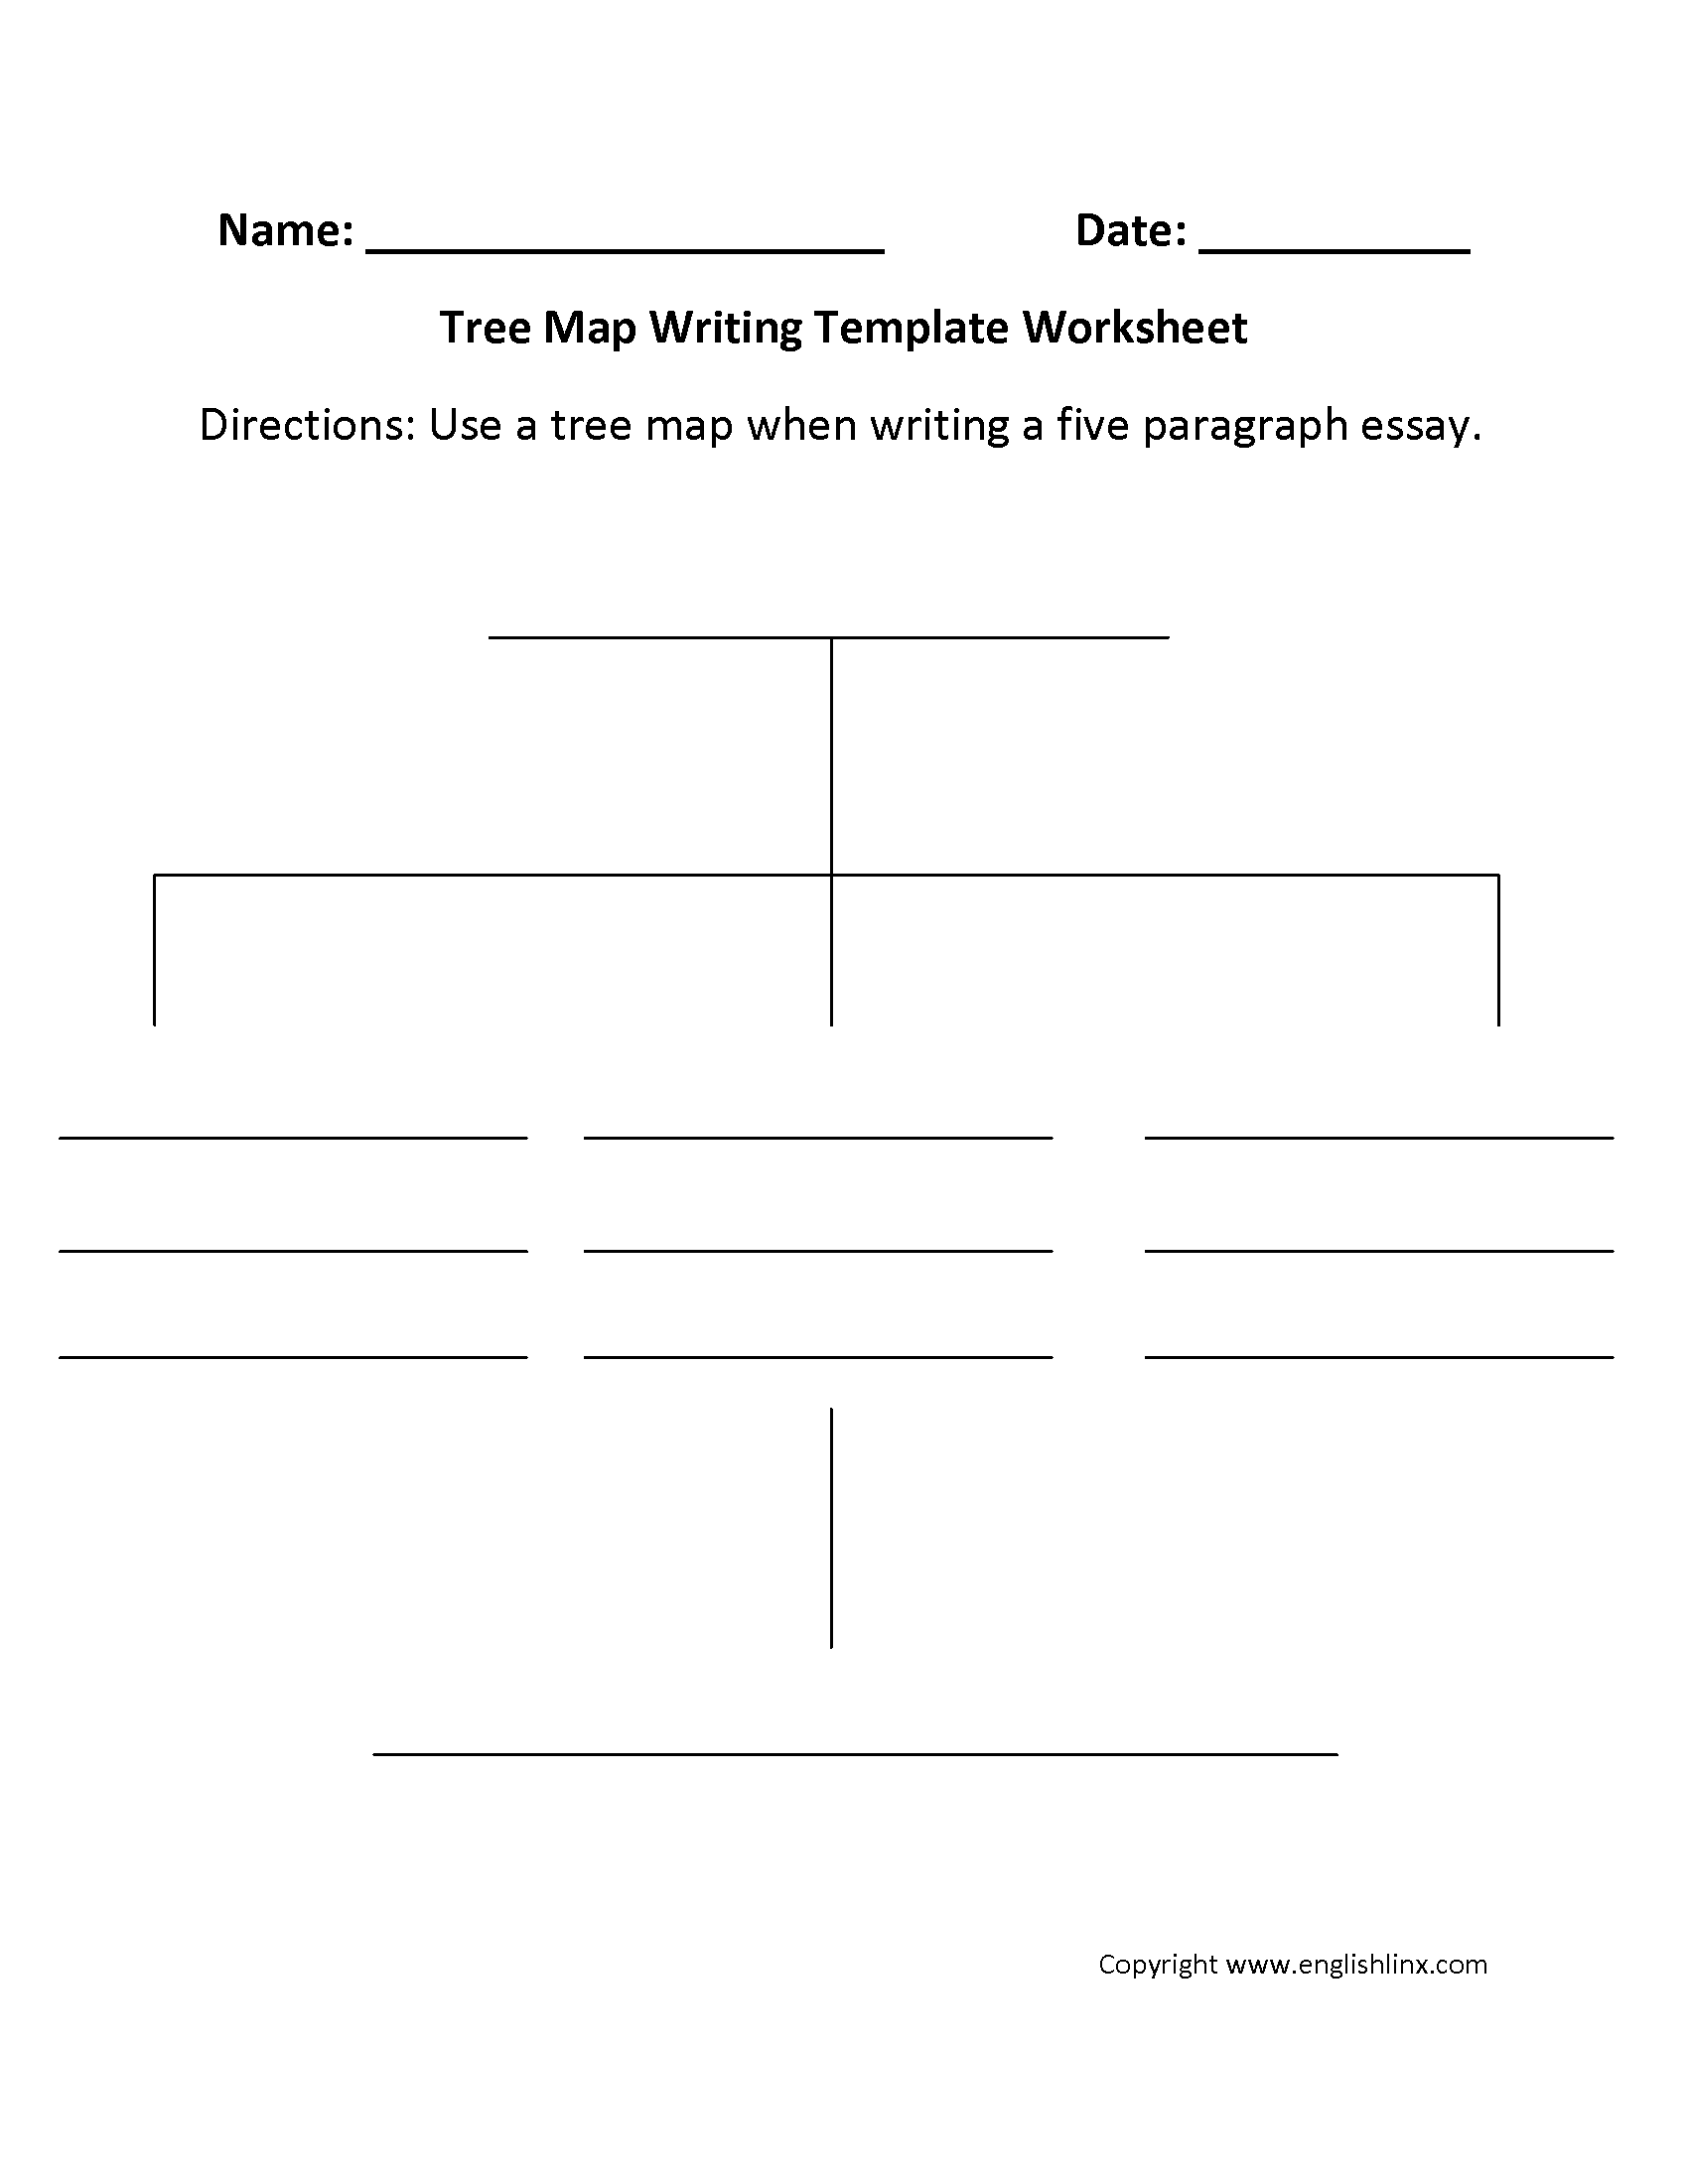 writing template worksheets tree map writing template worksheet tree map writing template worksheet